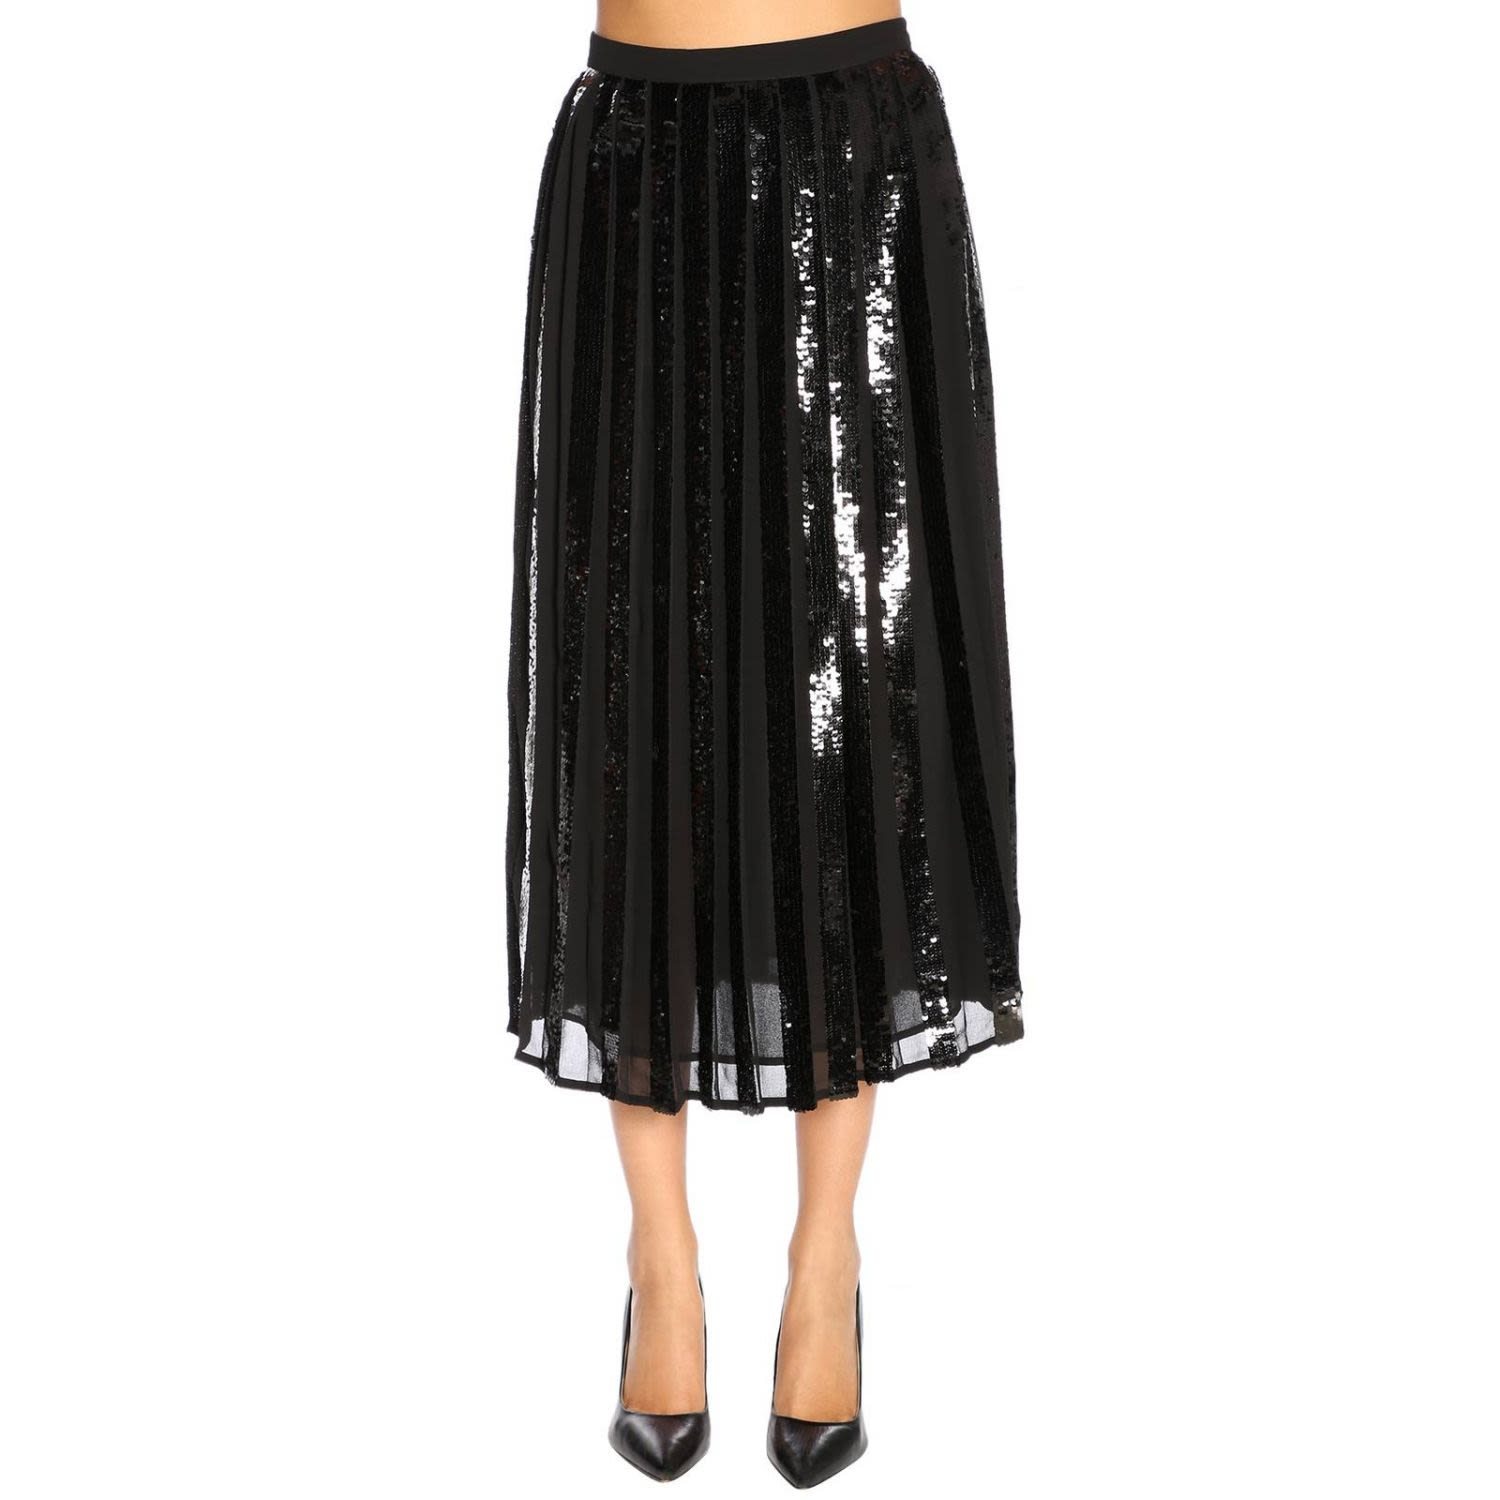 twinset - Twin Set Skirt Skirt Women Twin Set